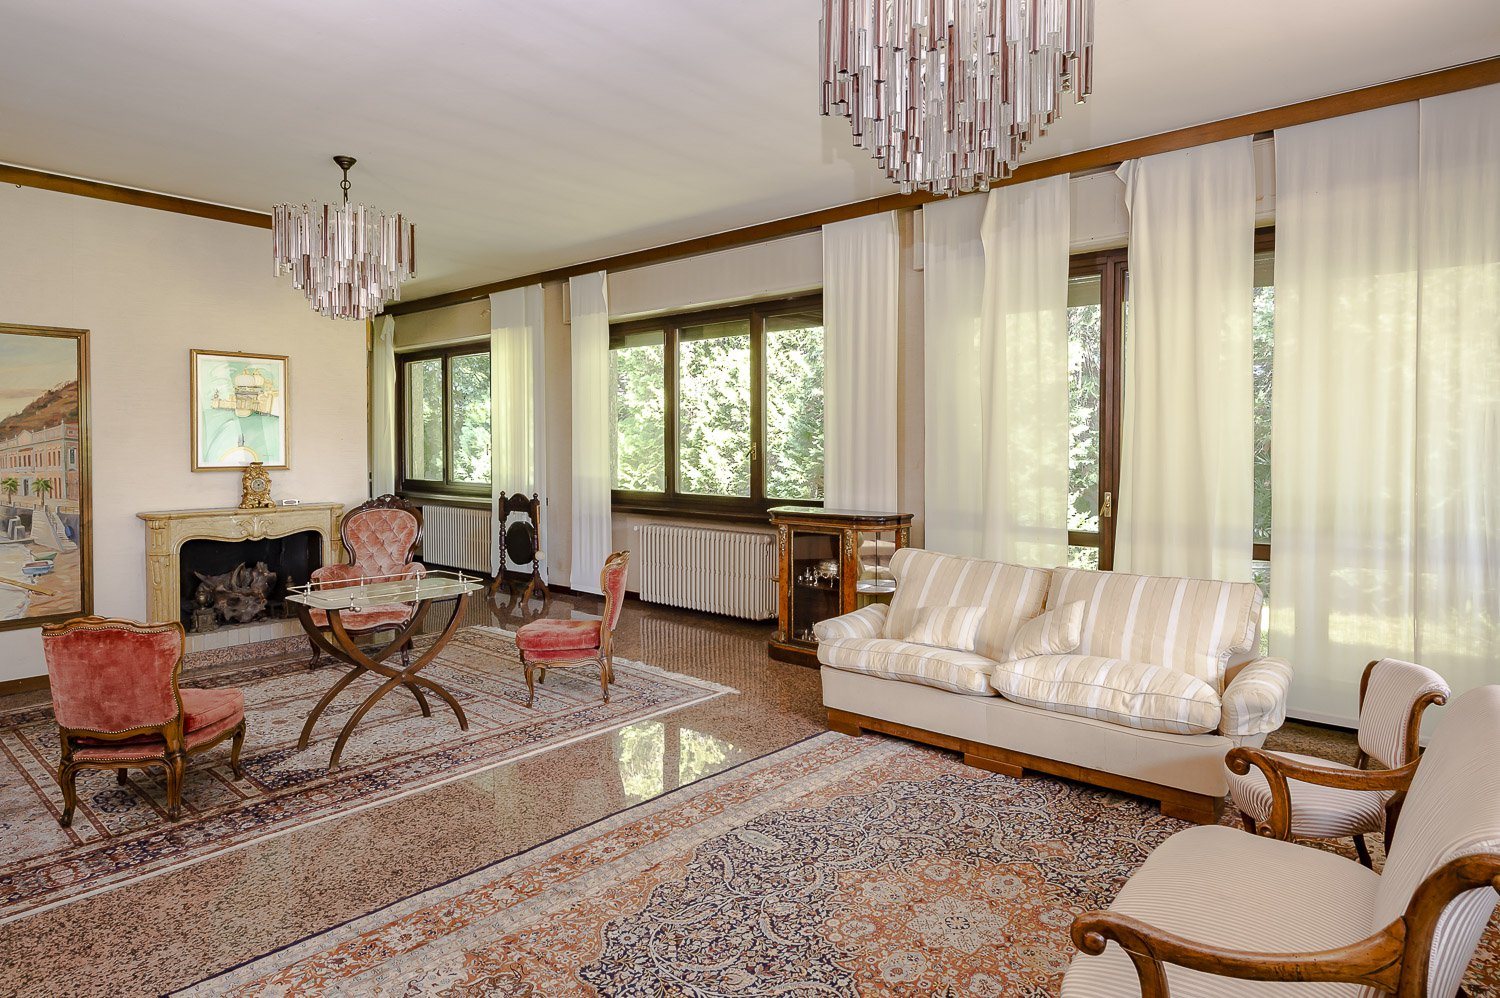 Prestigious villa for sale in Lesa - living room